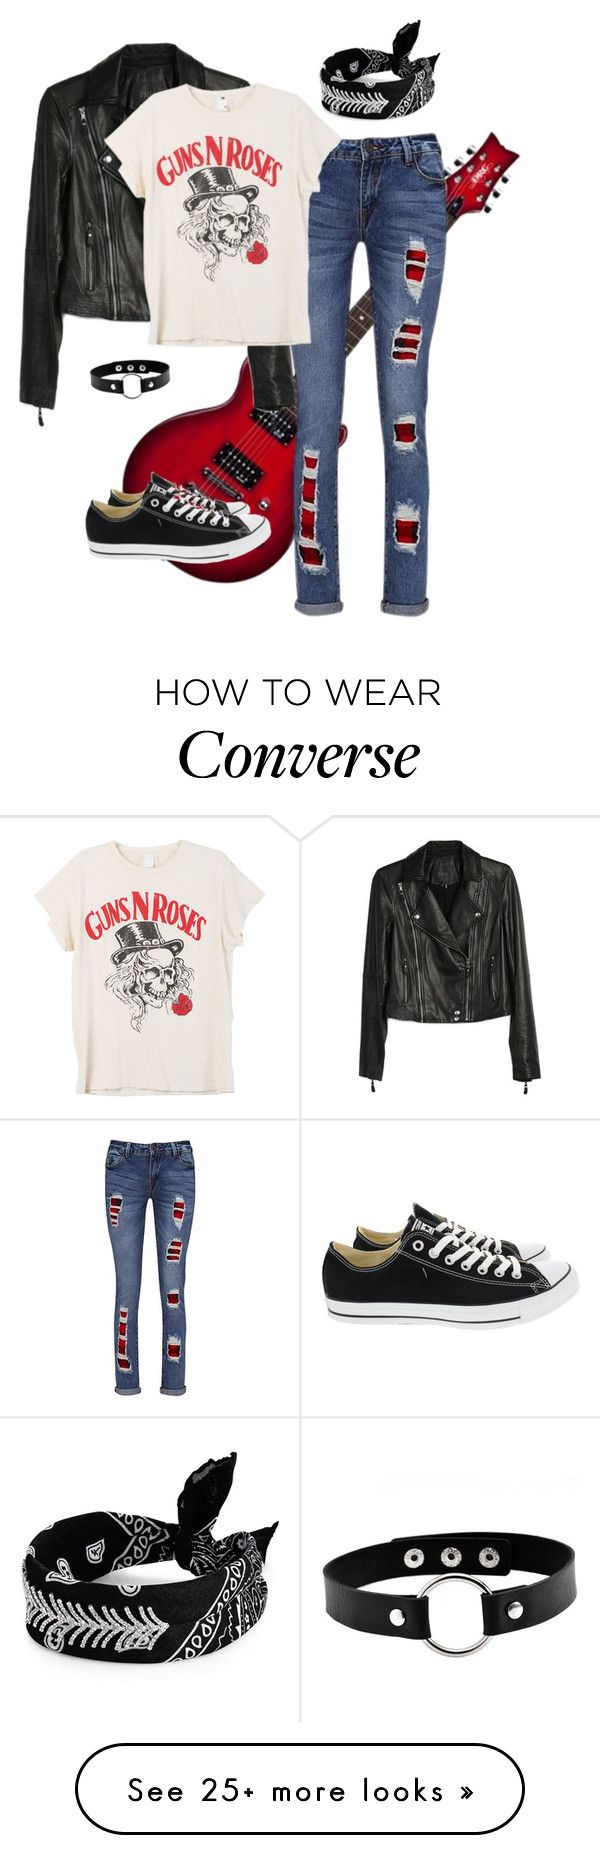 """Untitled #513"" by puppylove7 on Polyvore featuring Elite, Joe Browns, Converse, Paige Denim, MadeWorn and Fallon"